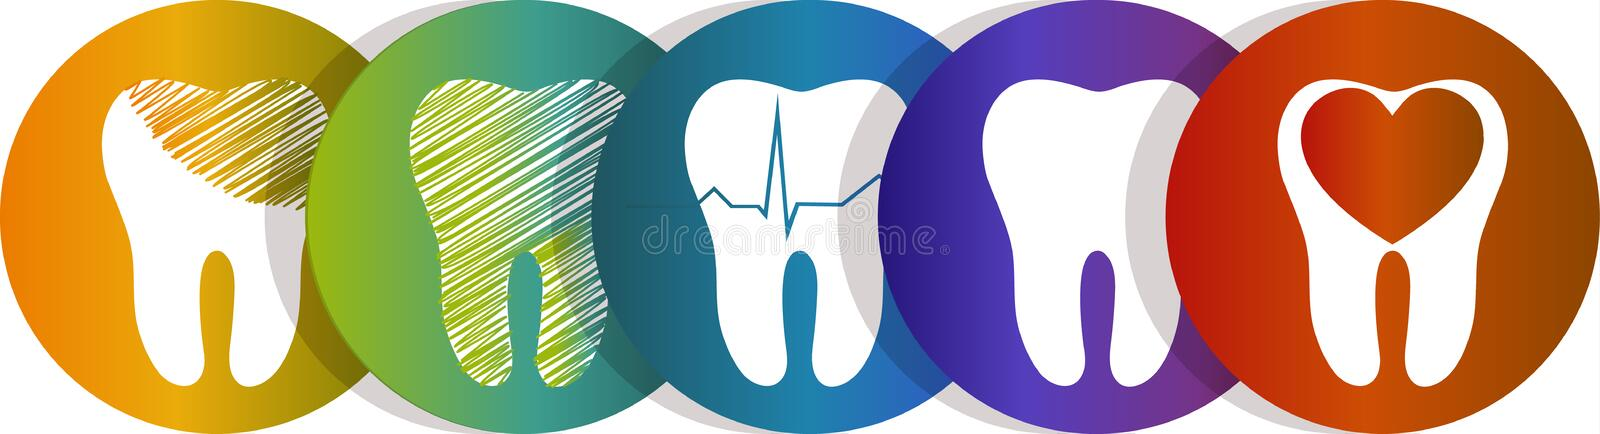 Tooth symbol set stock illustration